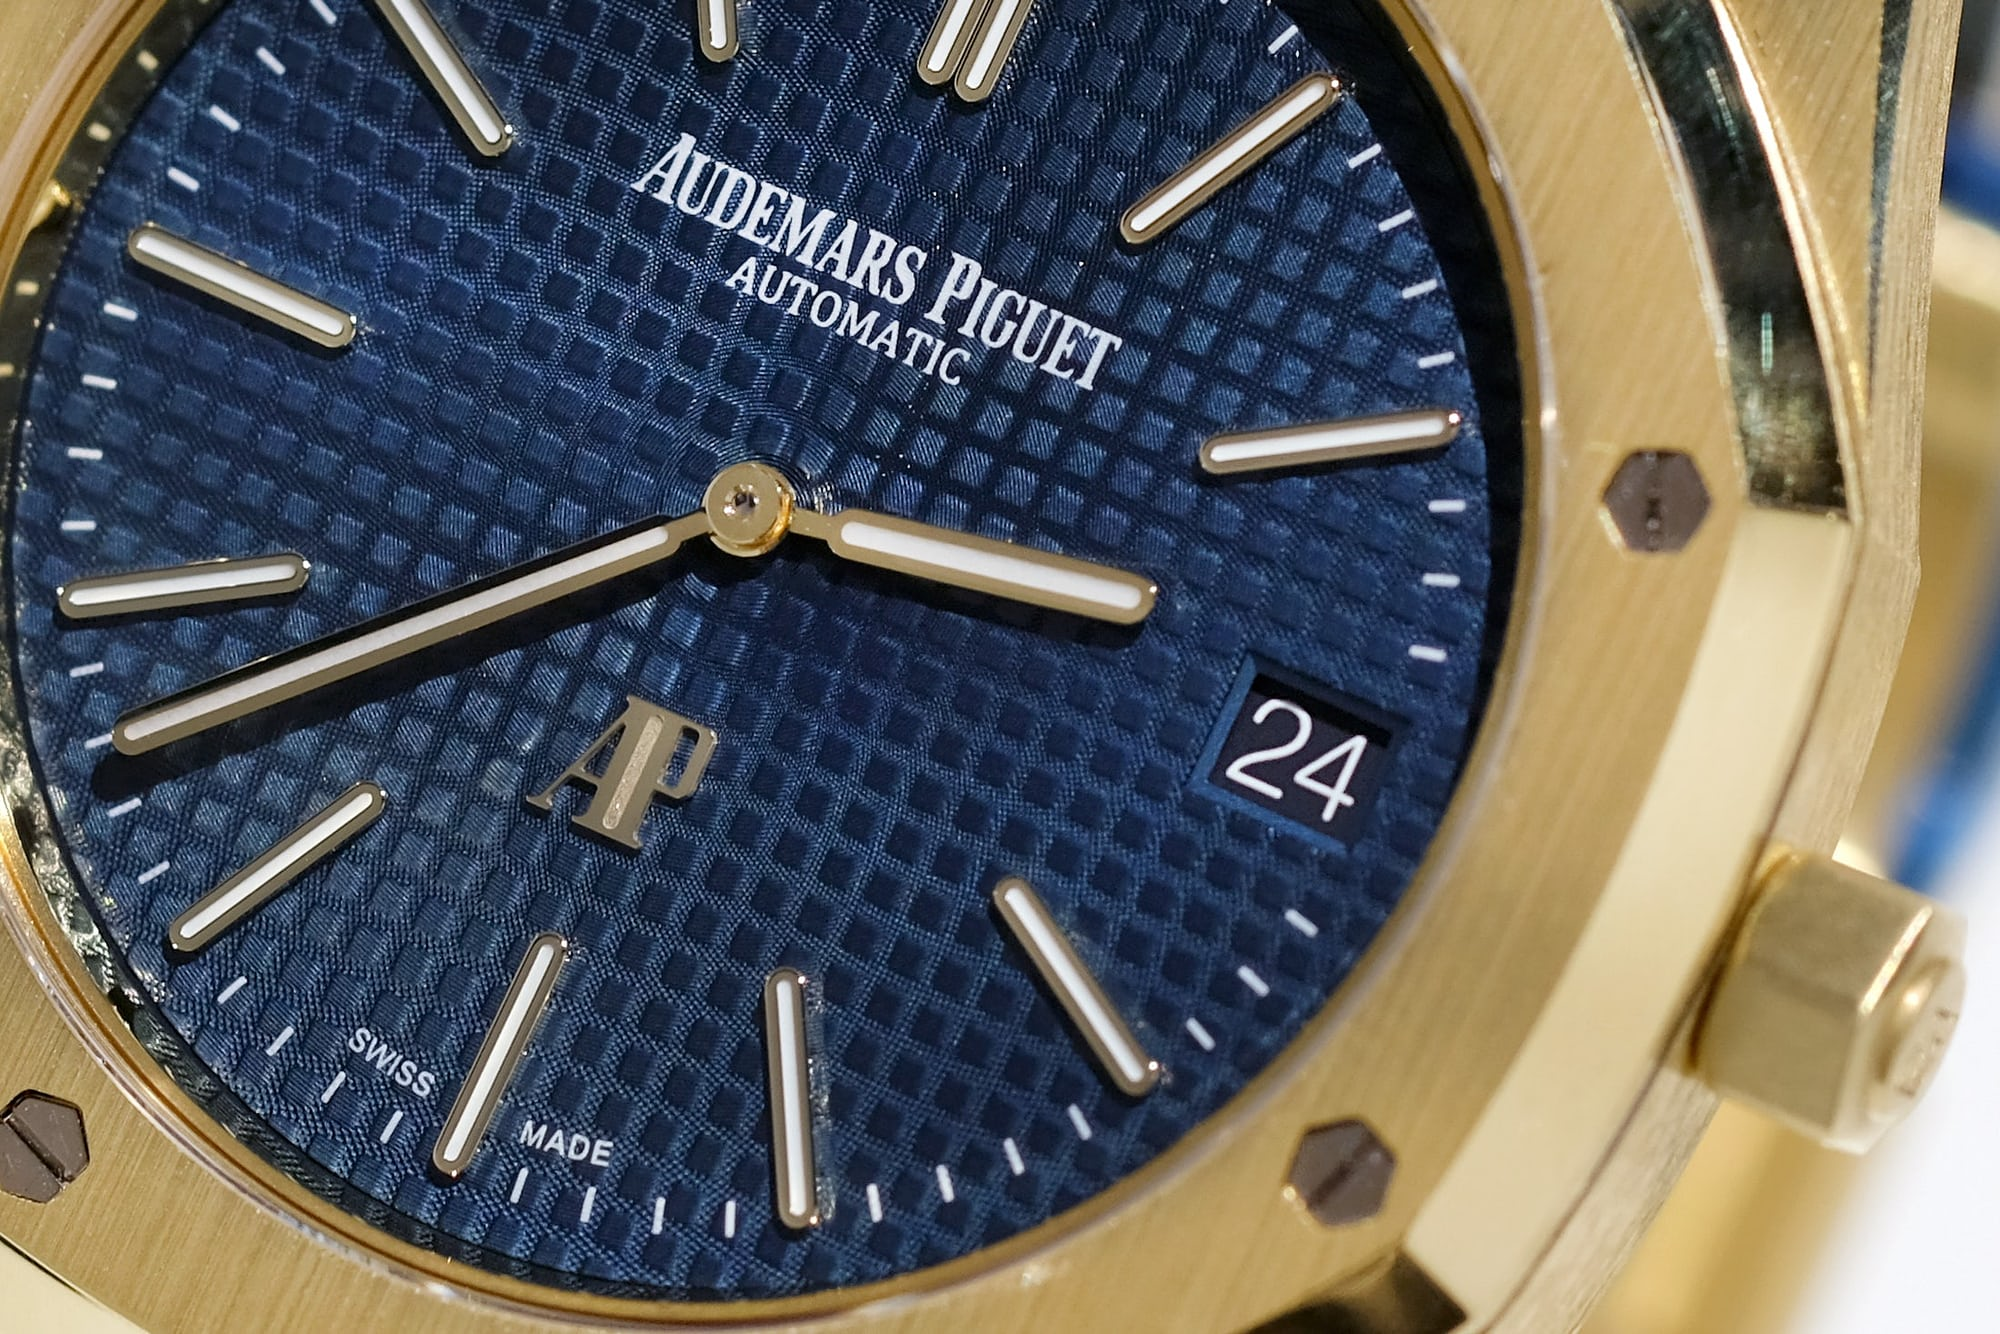 Sunday Rewind: Why You Should Pay More Attention To The Solid Gold Audemars Piguet Royal Oak 'Jumbo' jumbo 05